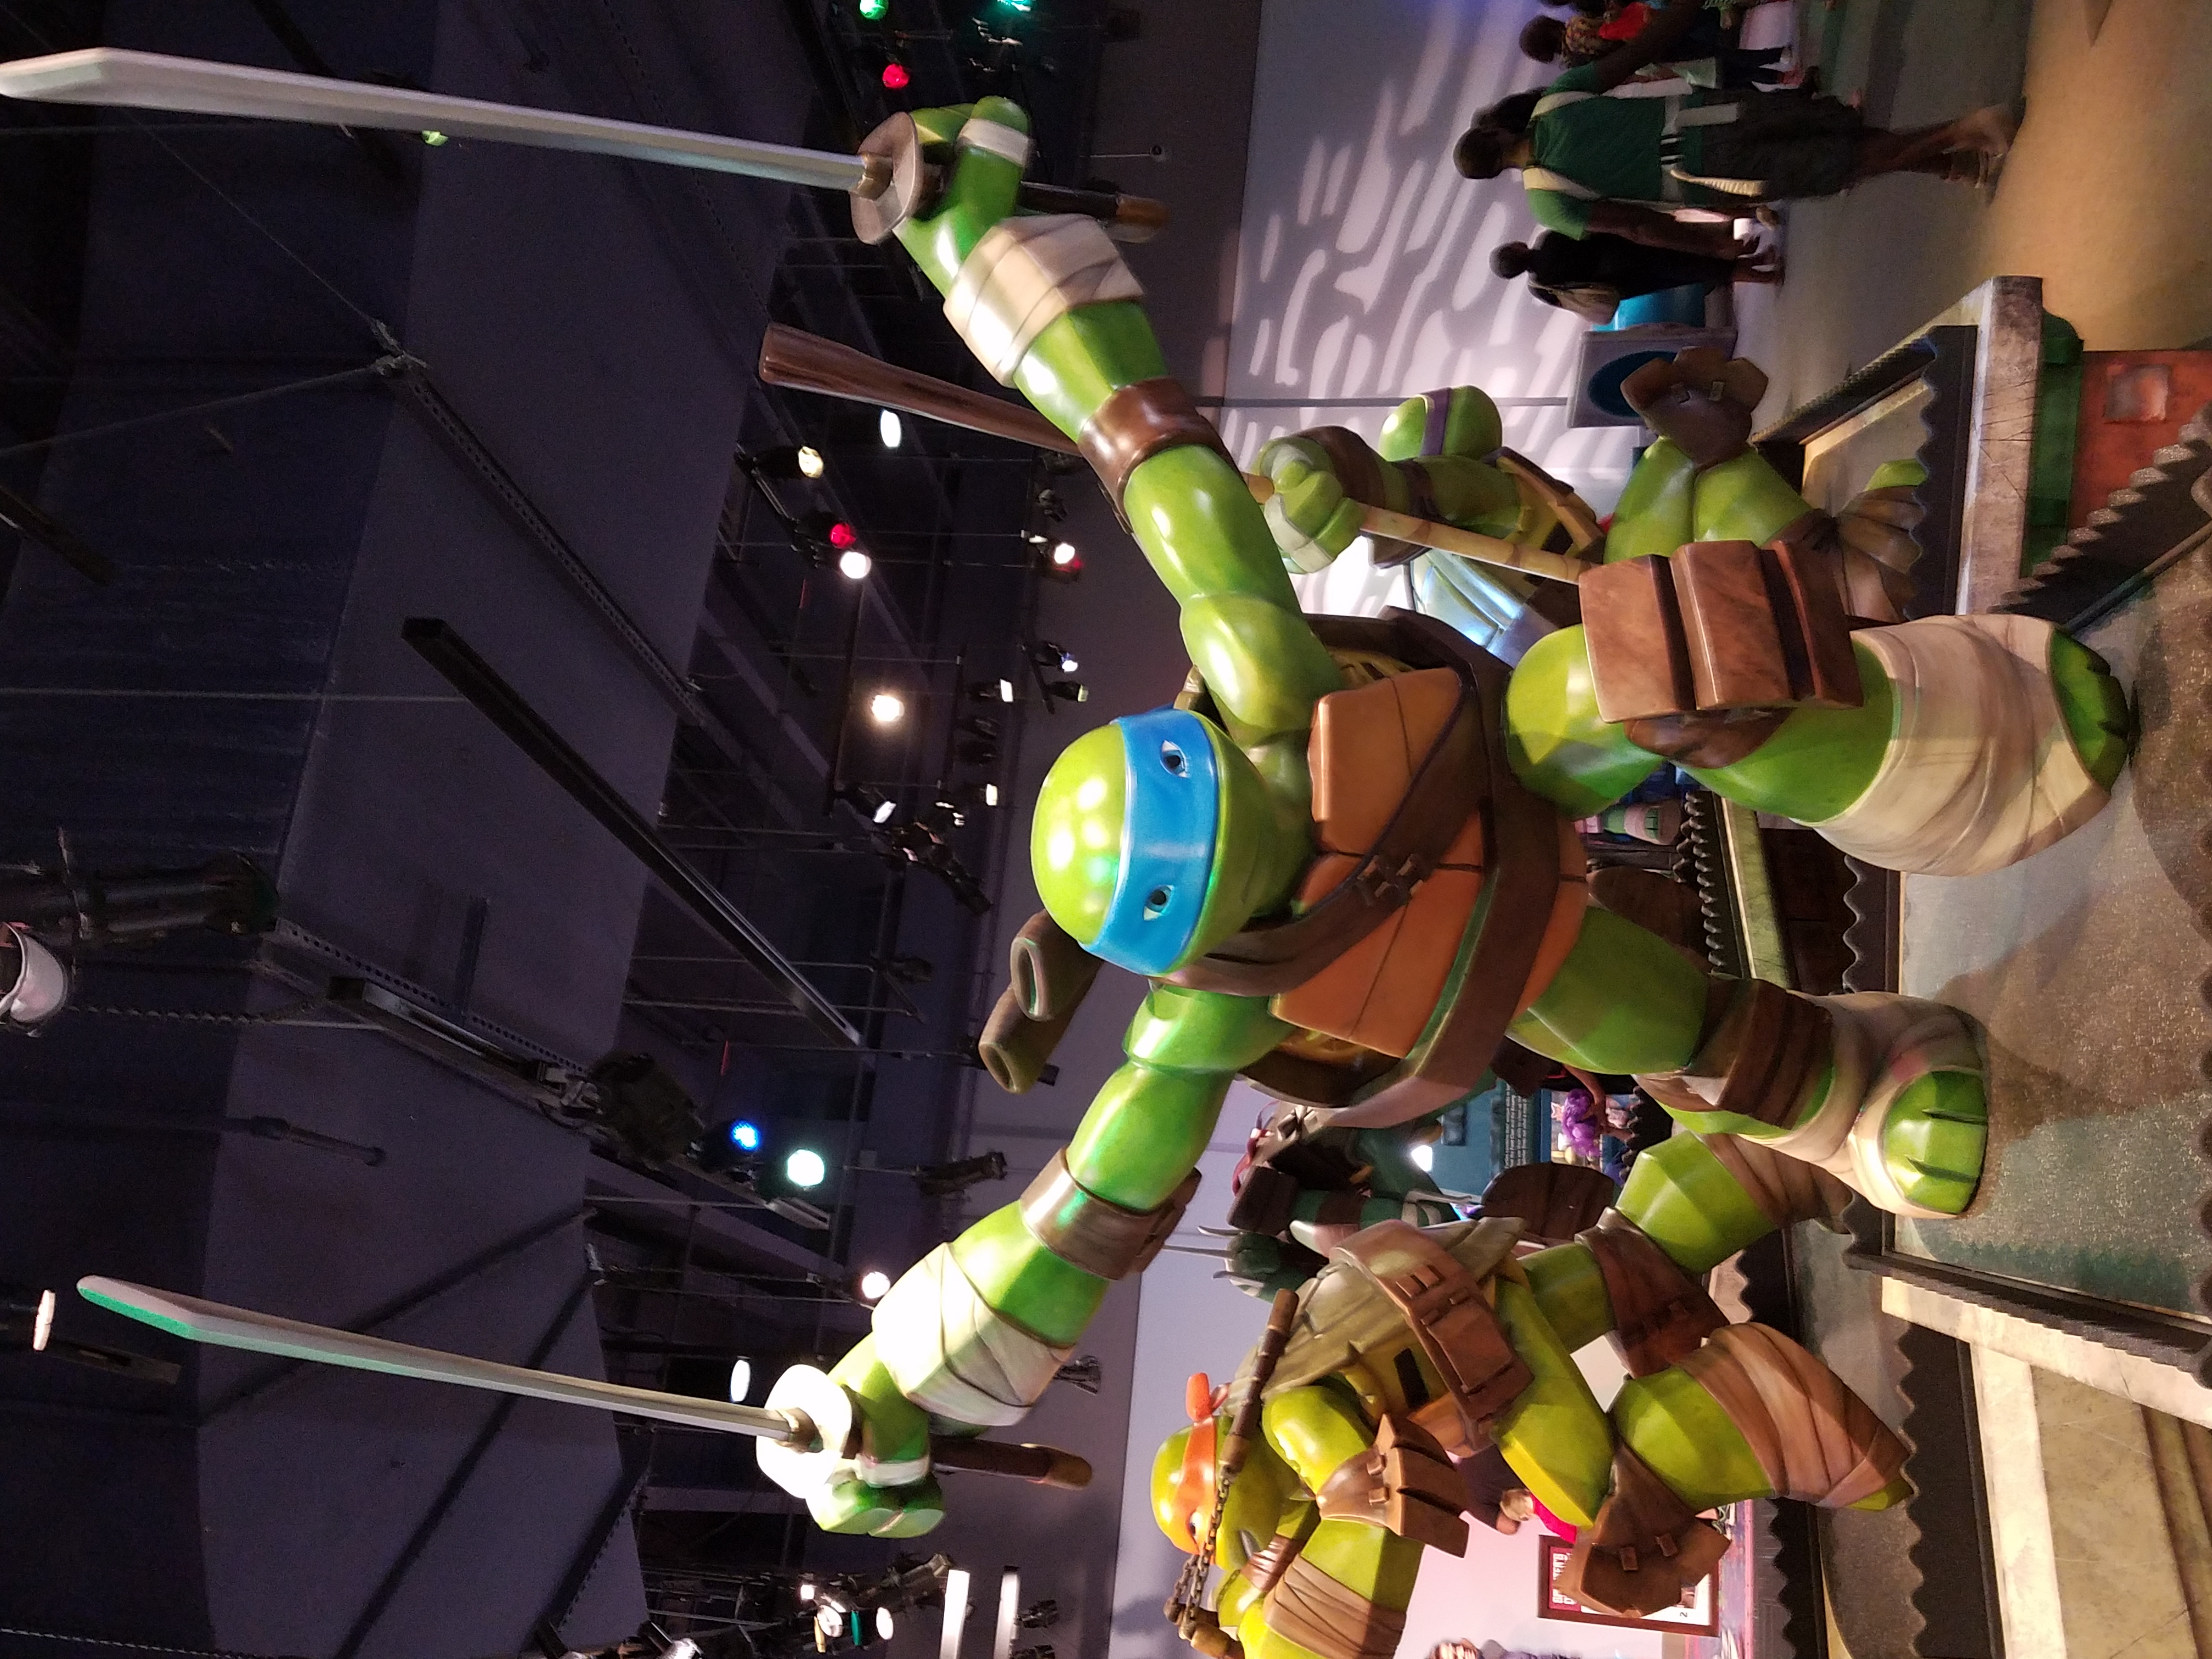 tmnt at liberty science center thirtymommy